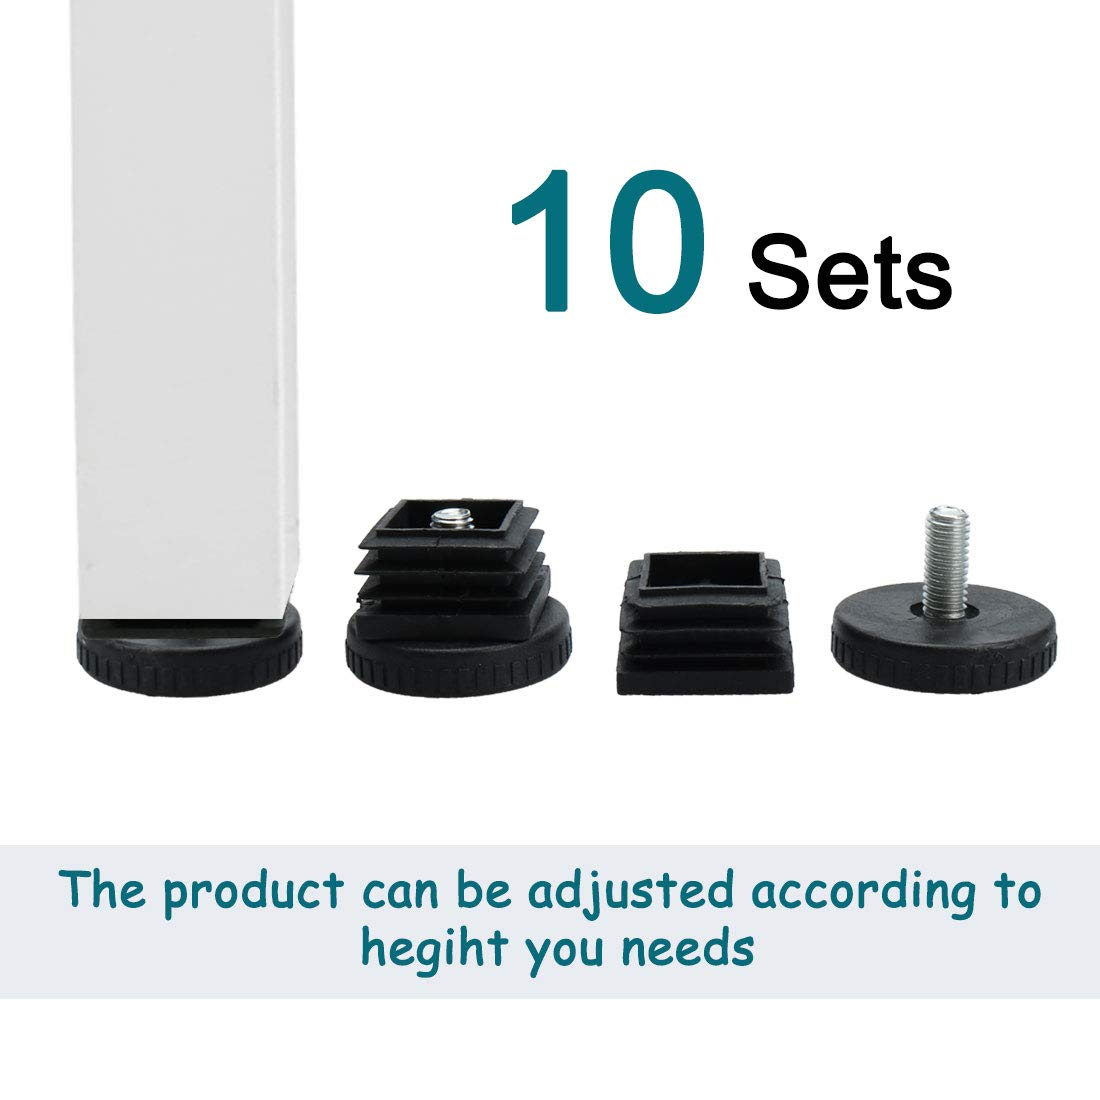 uxcell Leveling Feet 30 x 30mm Square Tube Inserts Kit Furniture Glide Adjustable Leveler with Nuts for Table Sofa Chair Leg 10 Sets